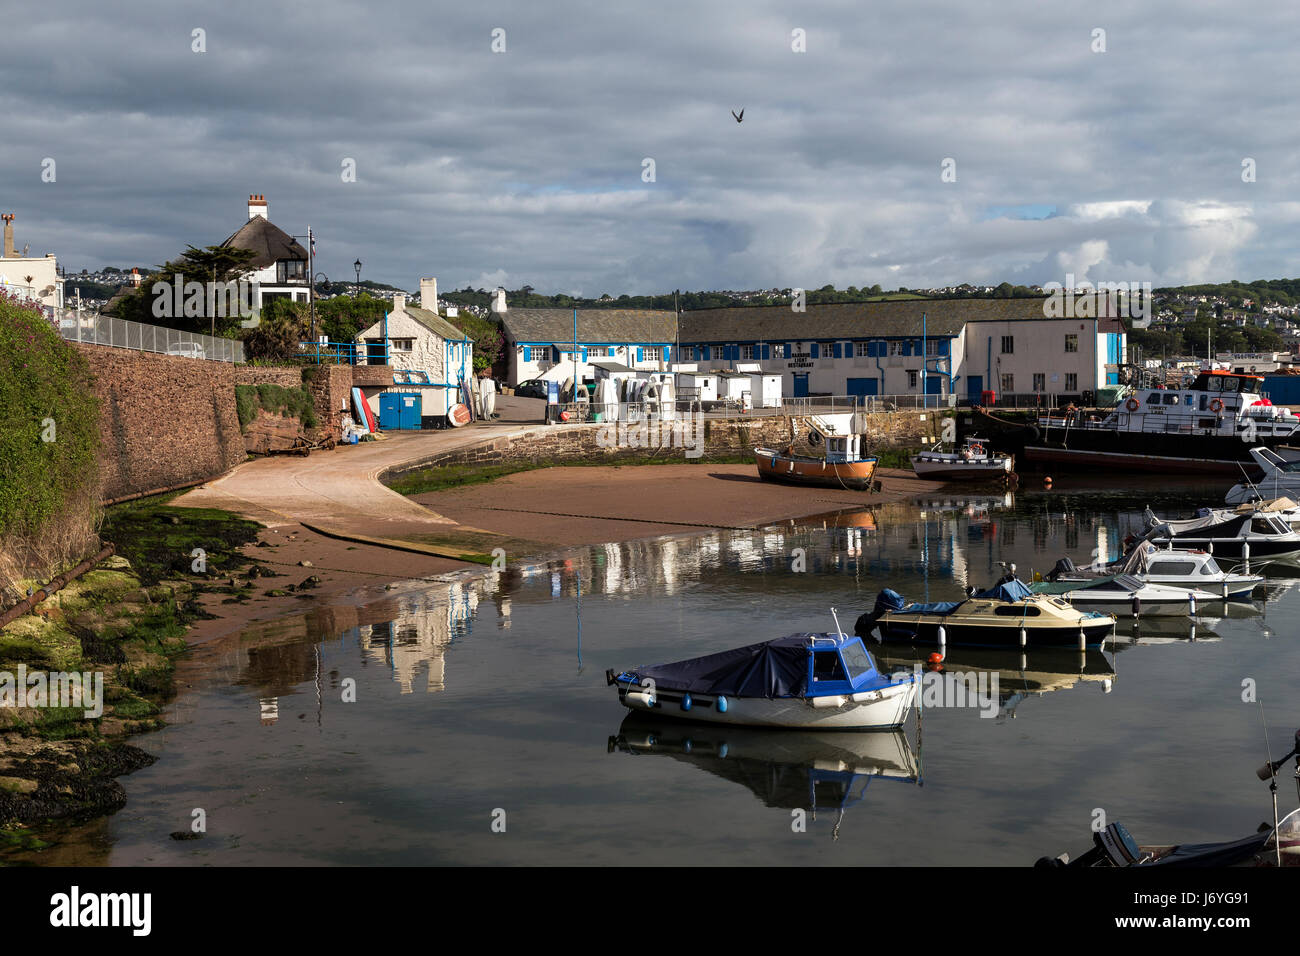 Paignton inner harbour in Torbay the birthplace of Agatha Christie,grande-bretagne, great, großbritannien, - Stock Image